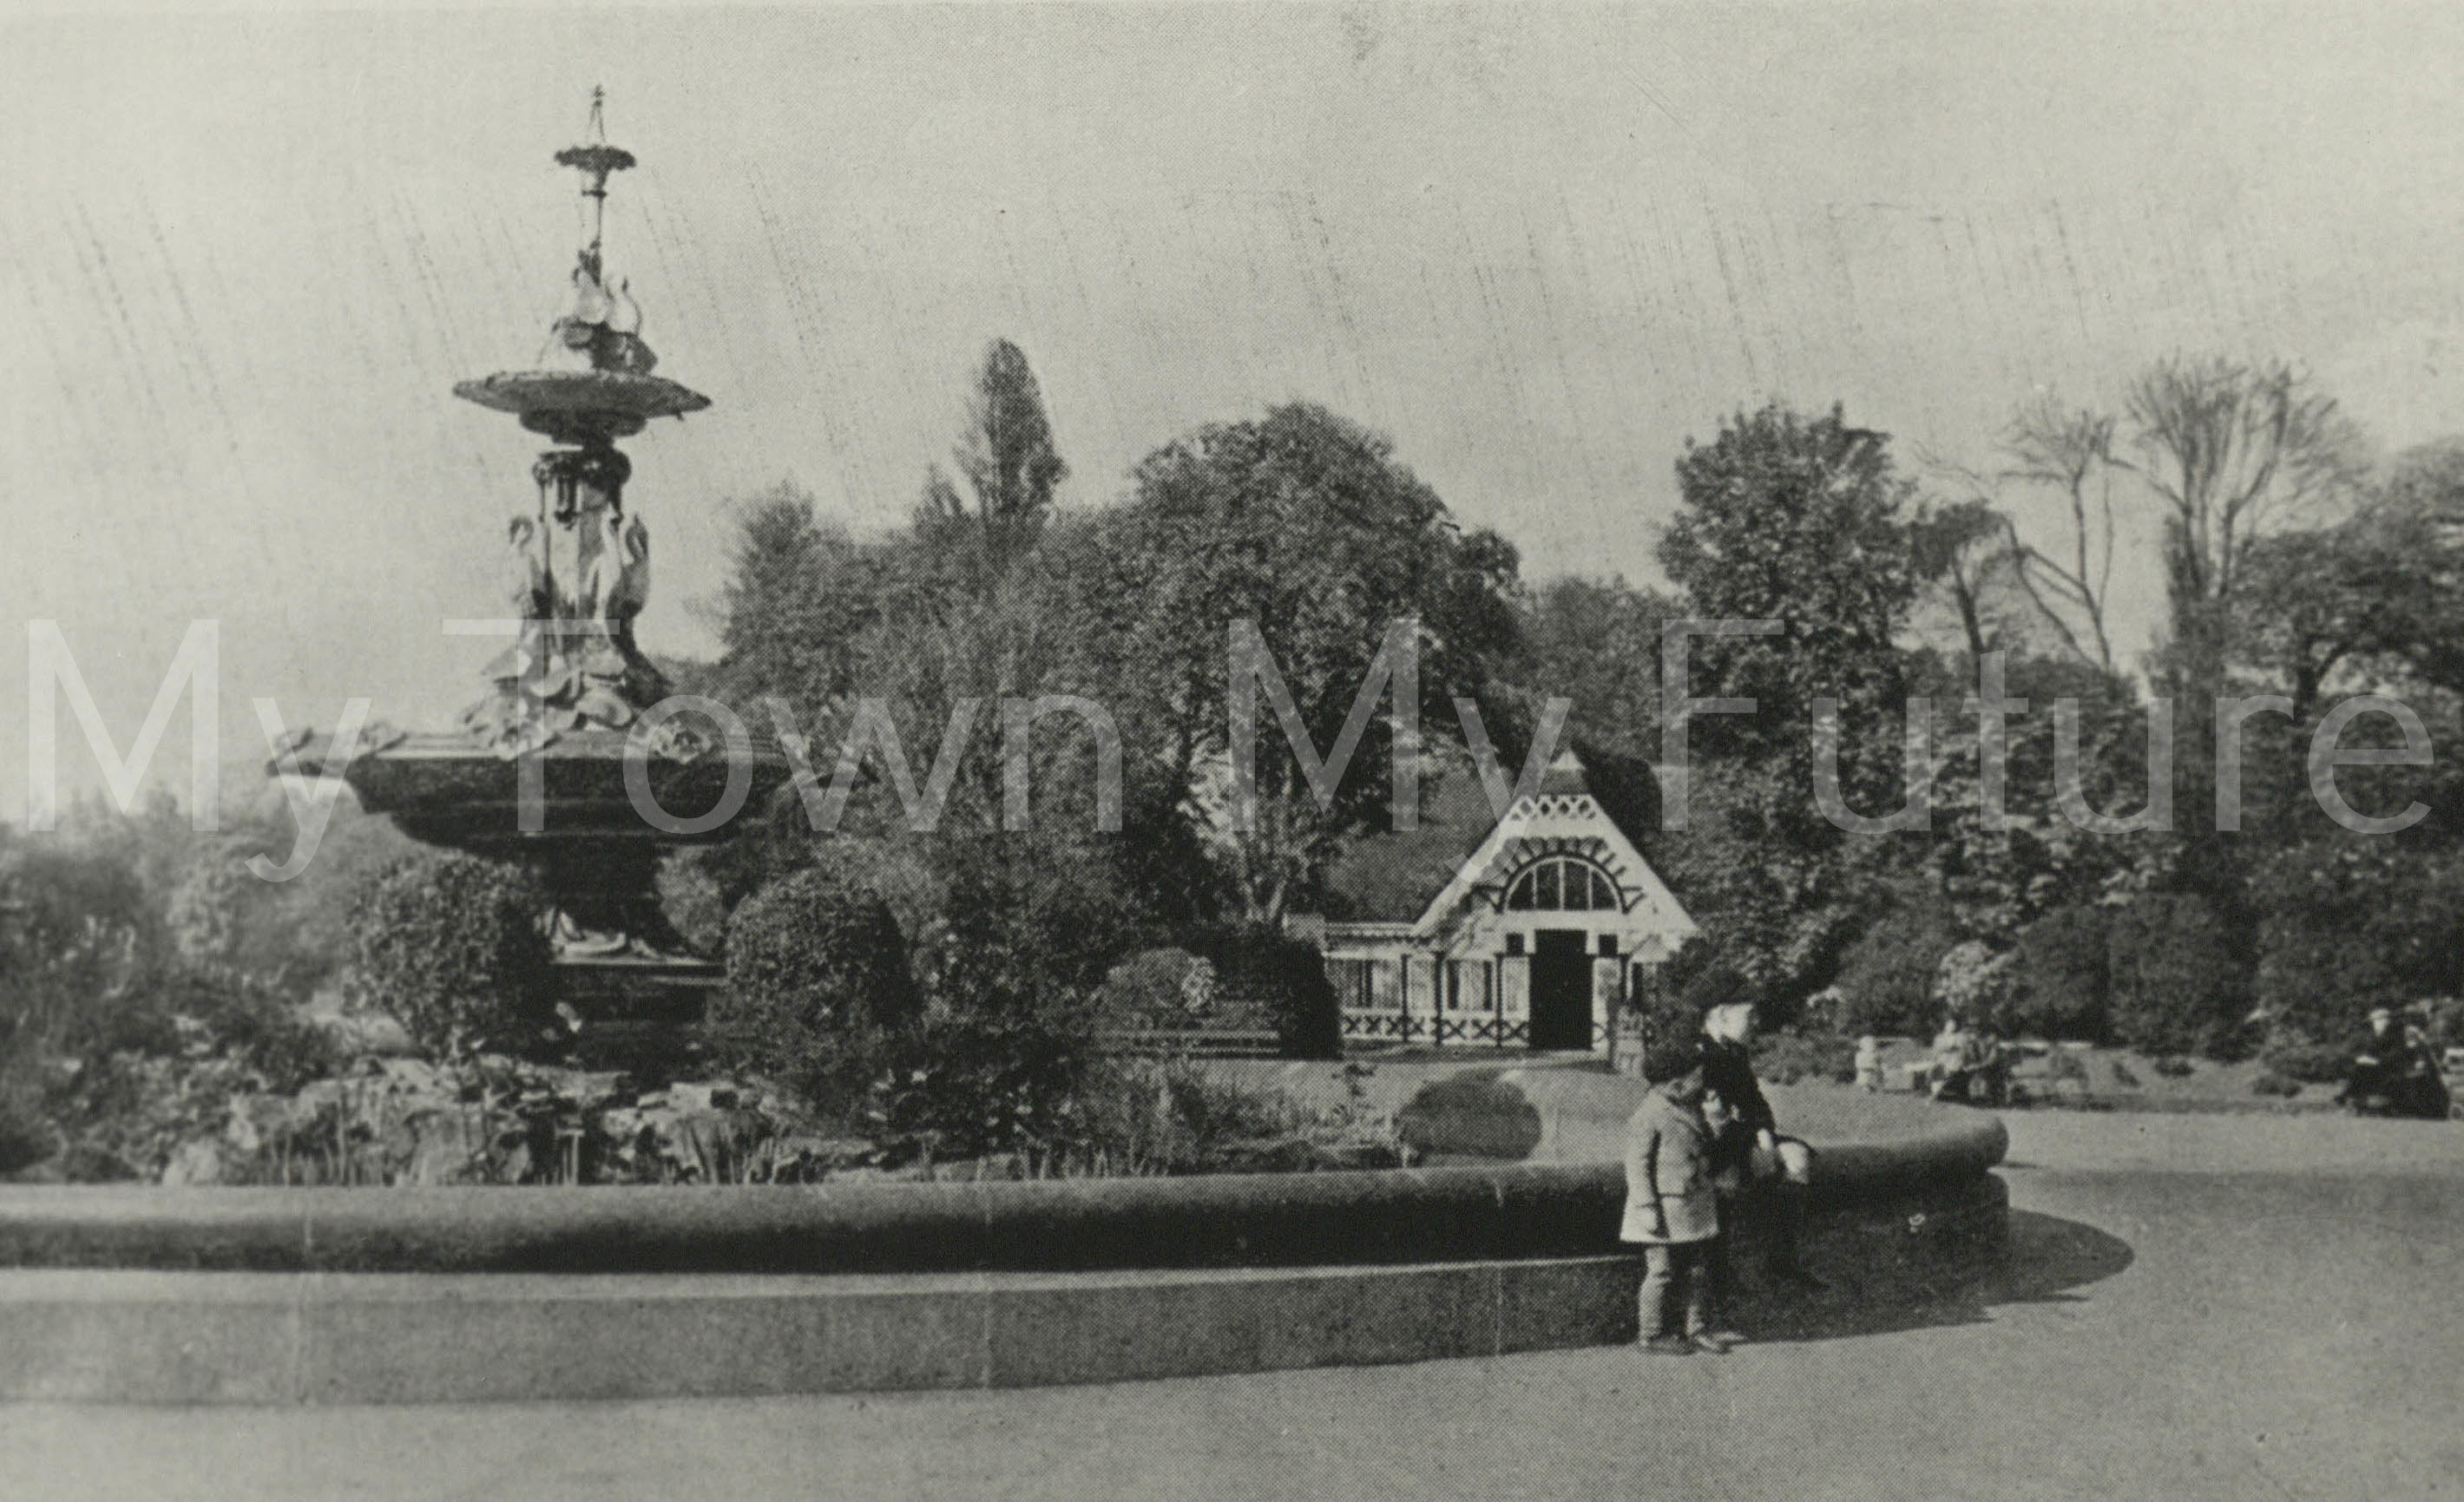 Albert Park - Fountain which was presented by Joseph Pease Esq. Postcard - No date - Mrs Hunter - Dept. of Planning - Cleveland County Council